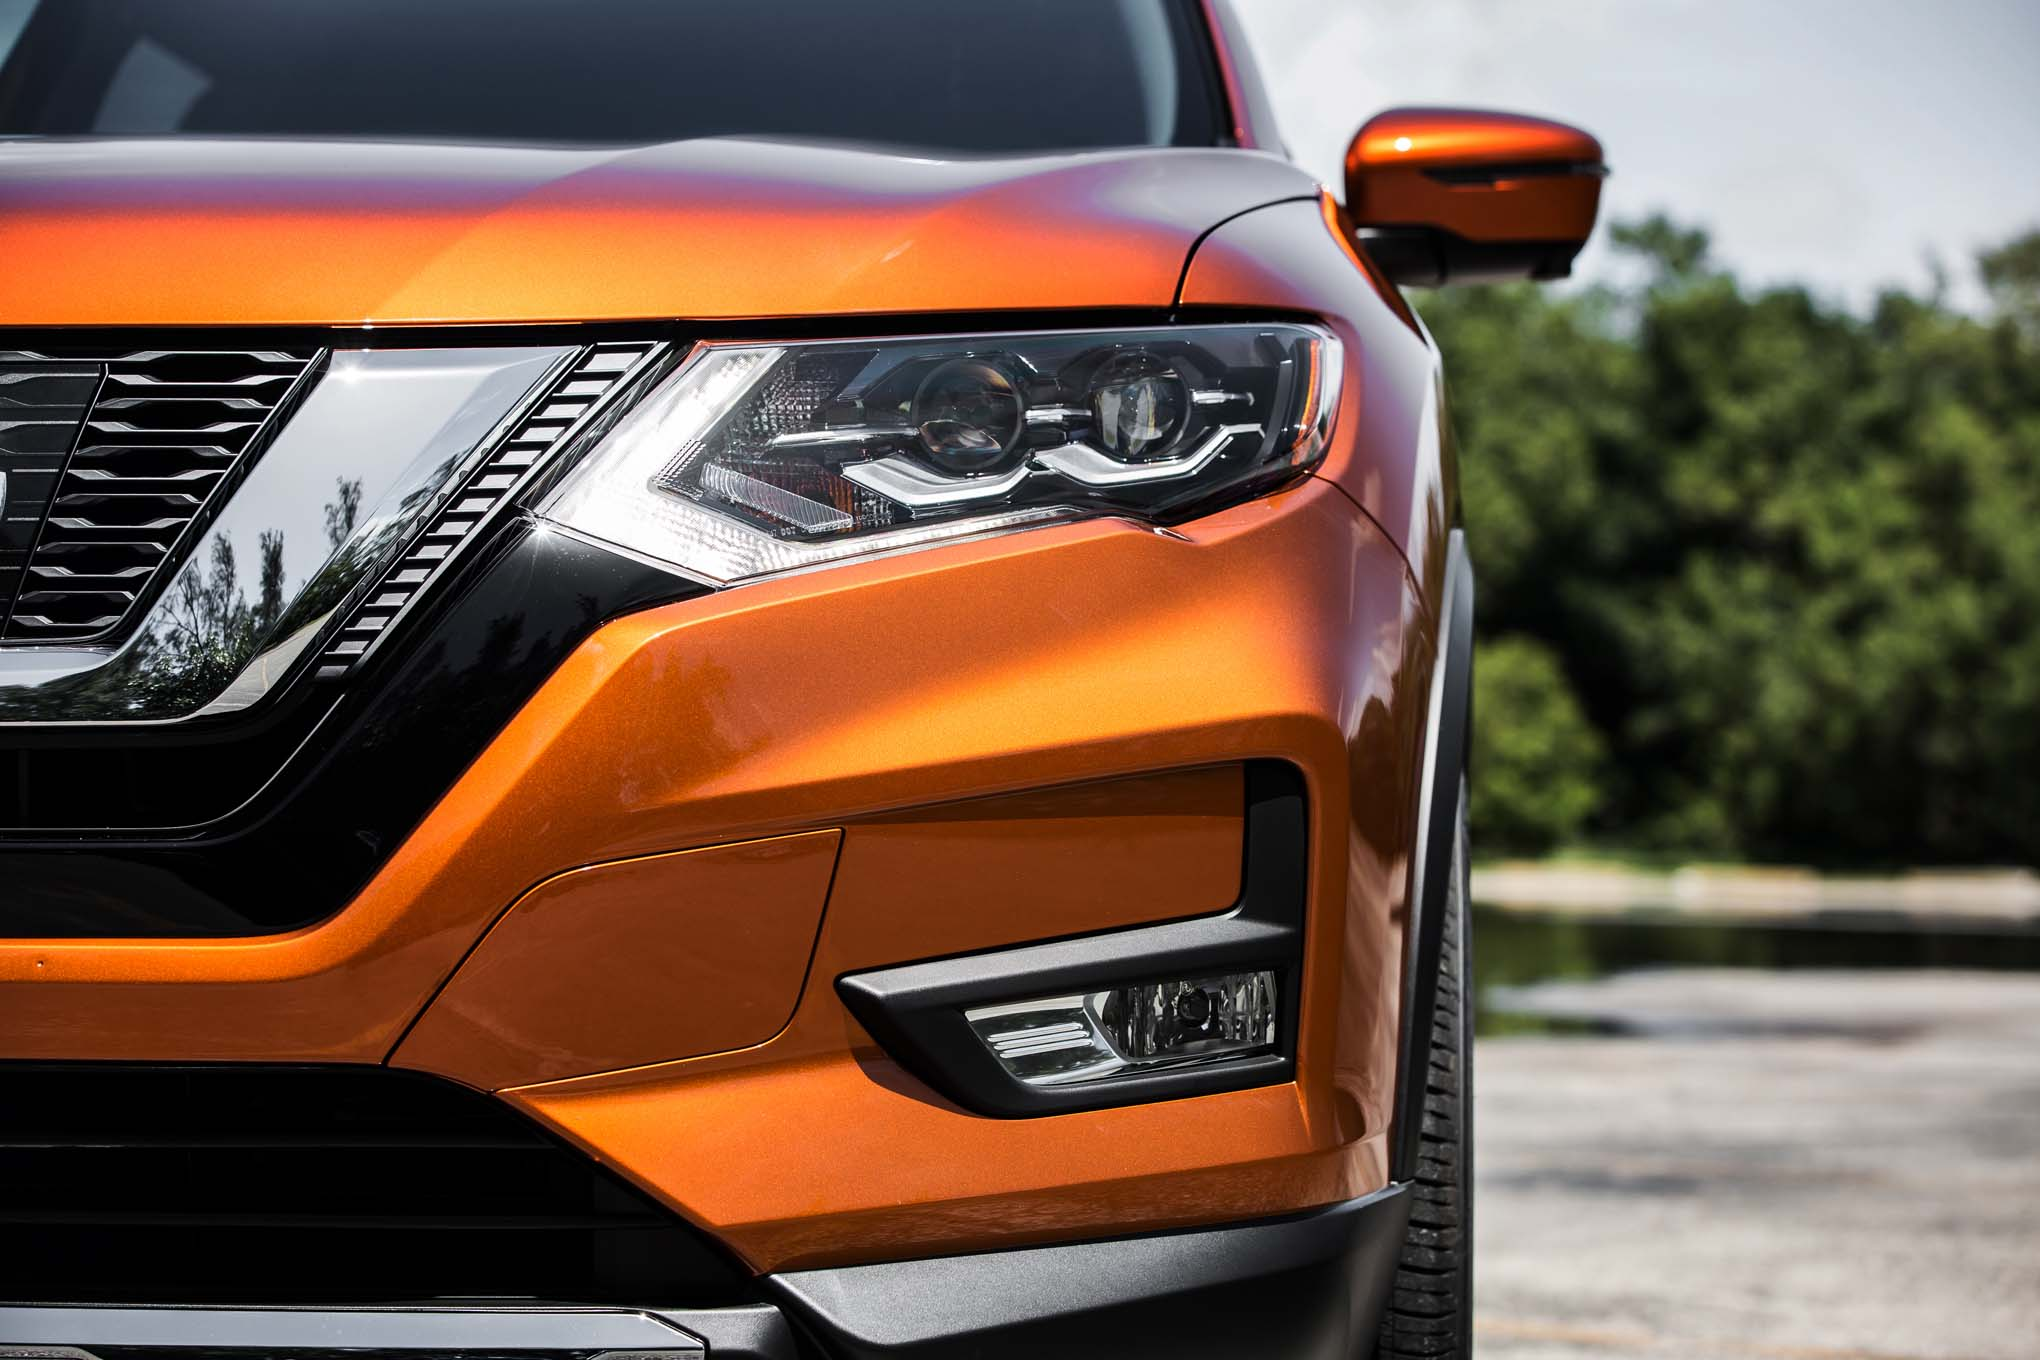 2017 Nissan Rogue Trail Warrior Project Makes Tracks In New York